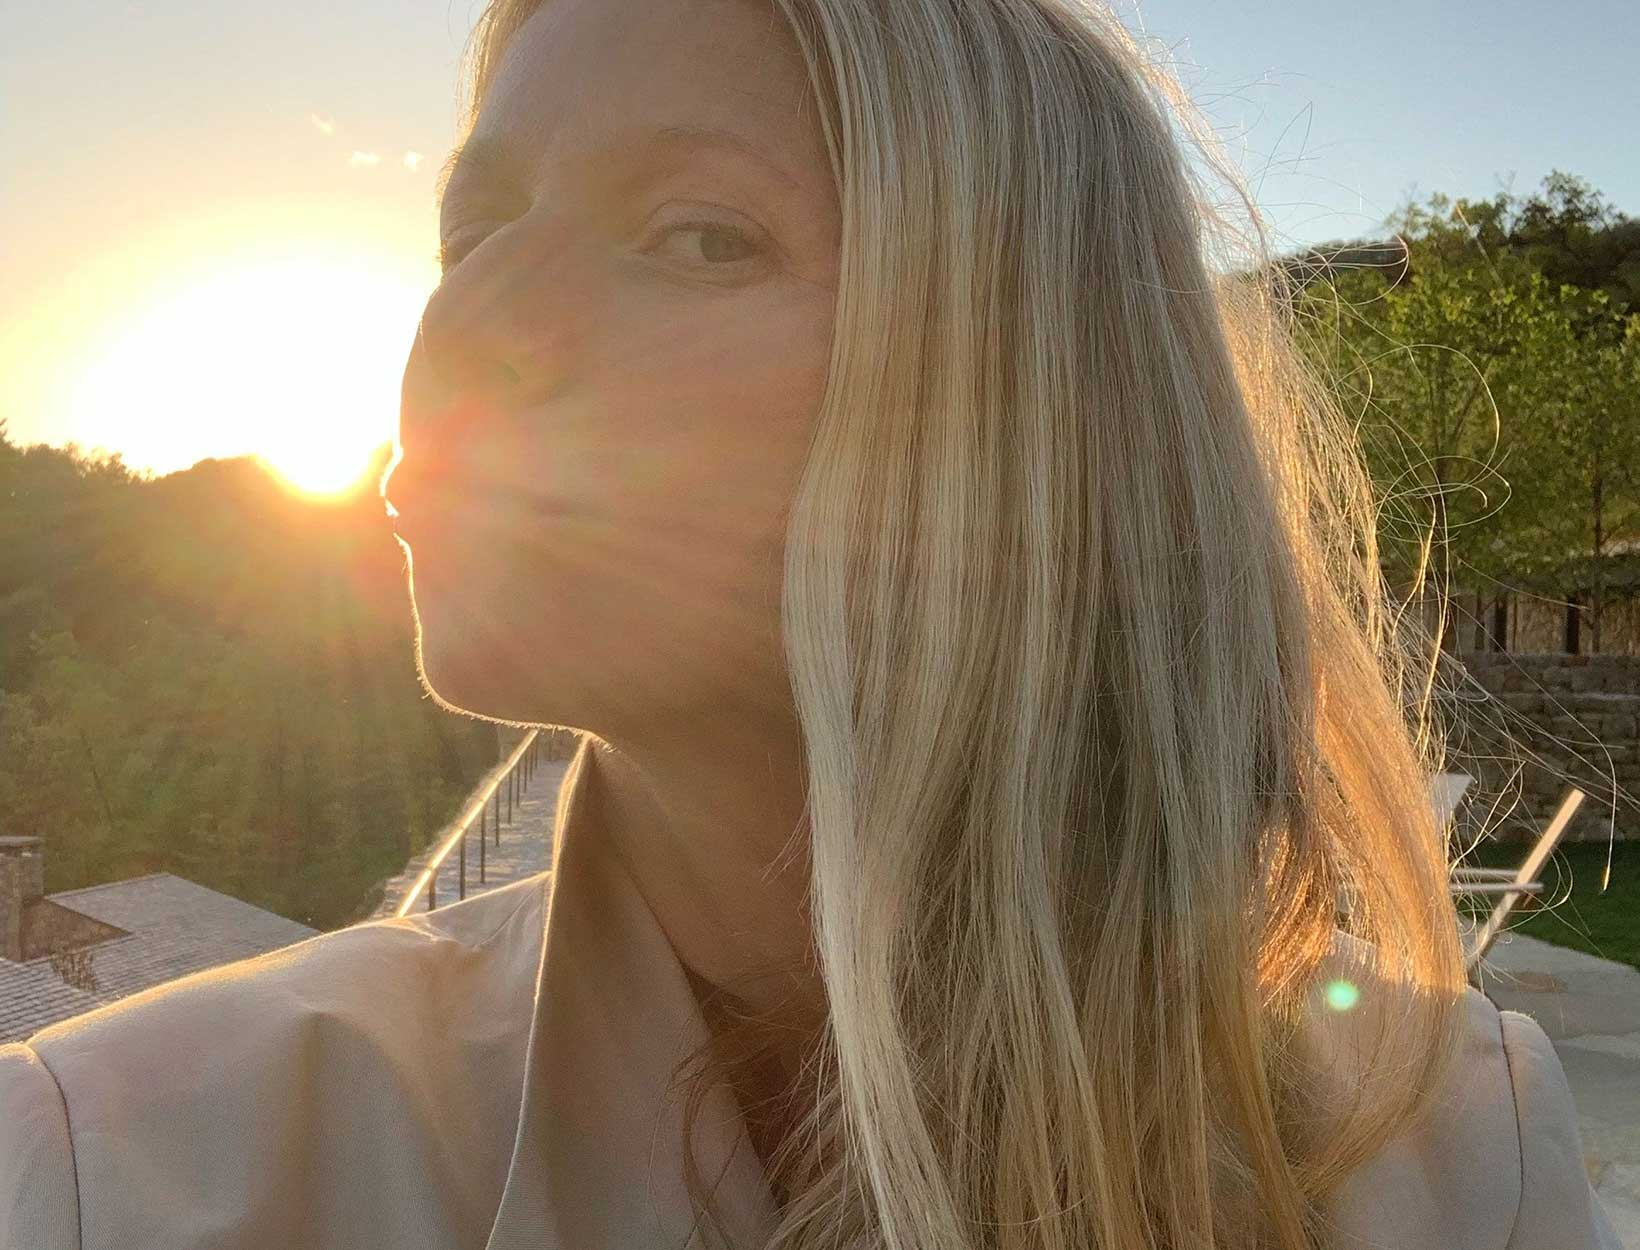 Gwyneth in the sun